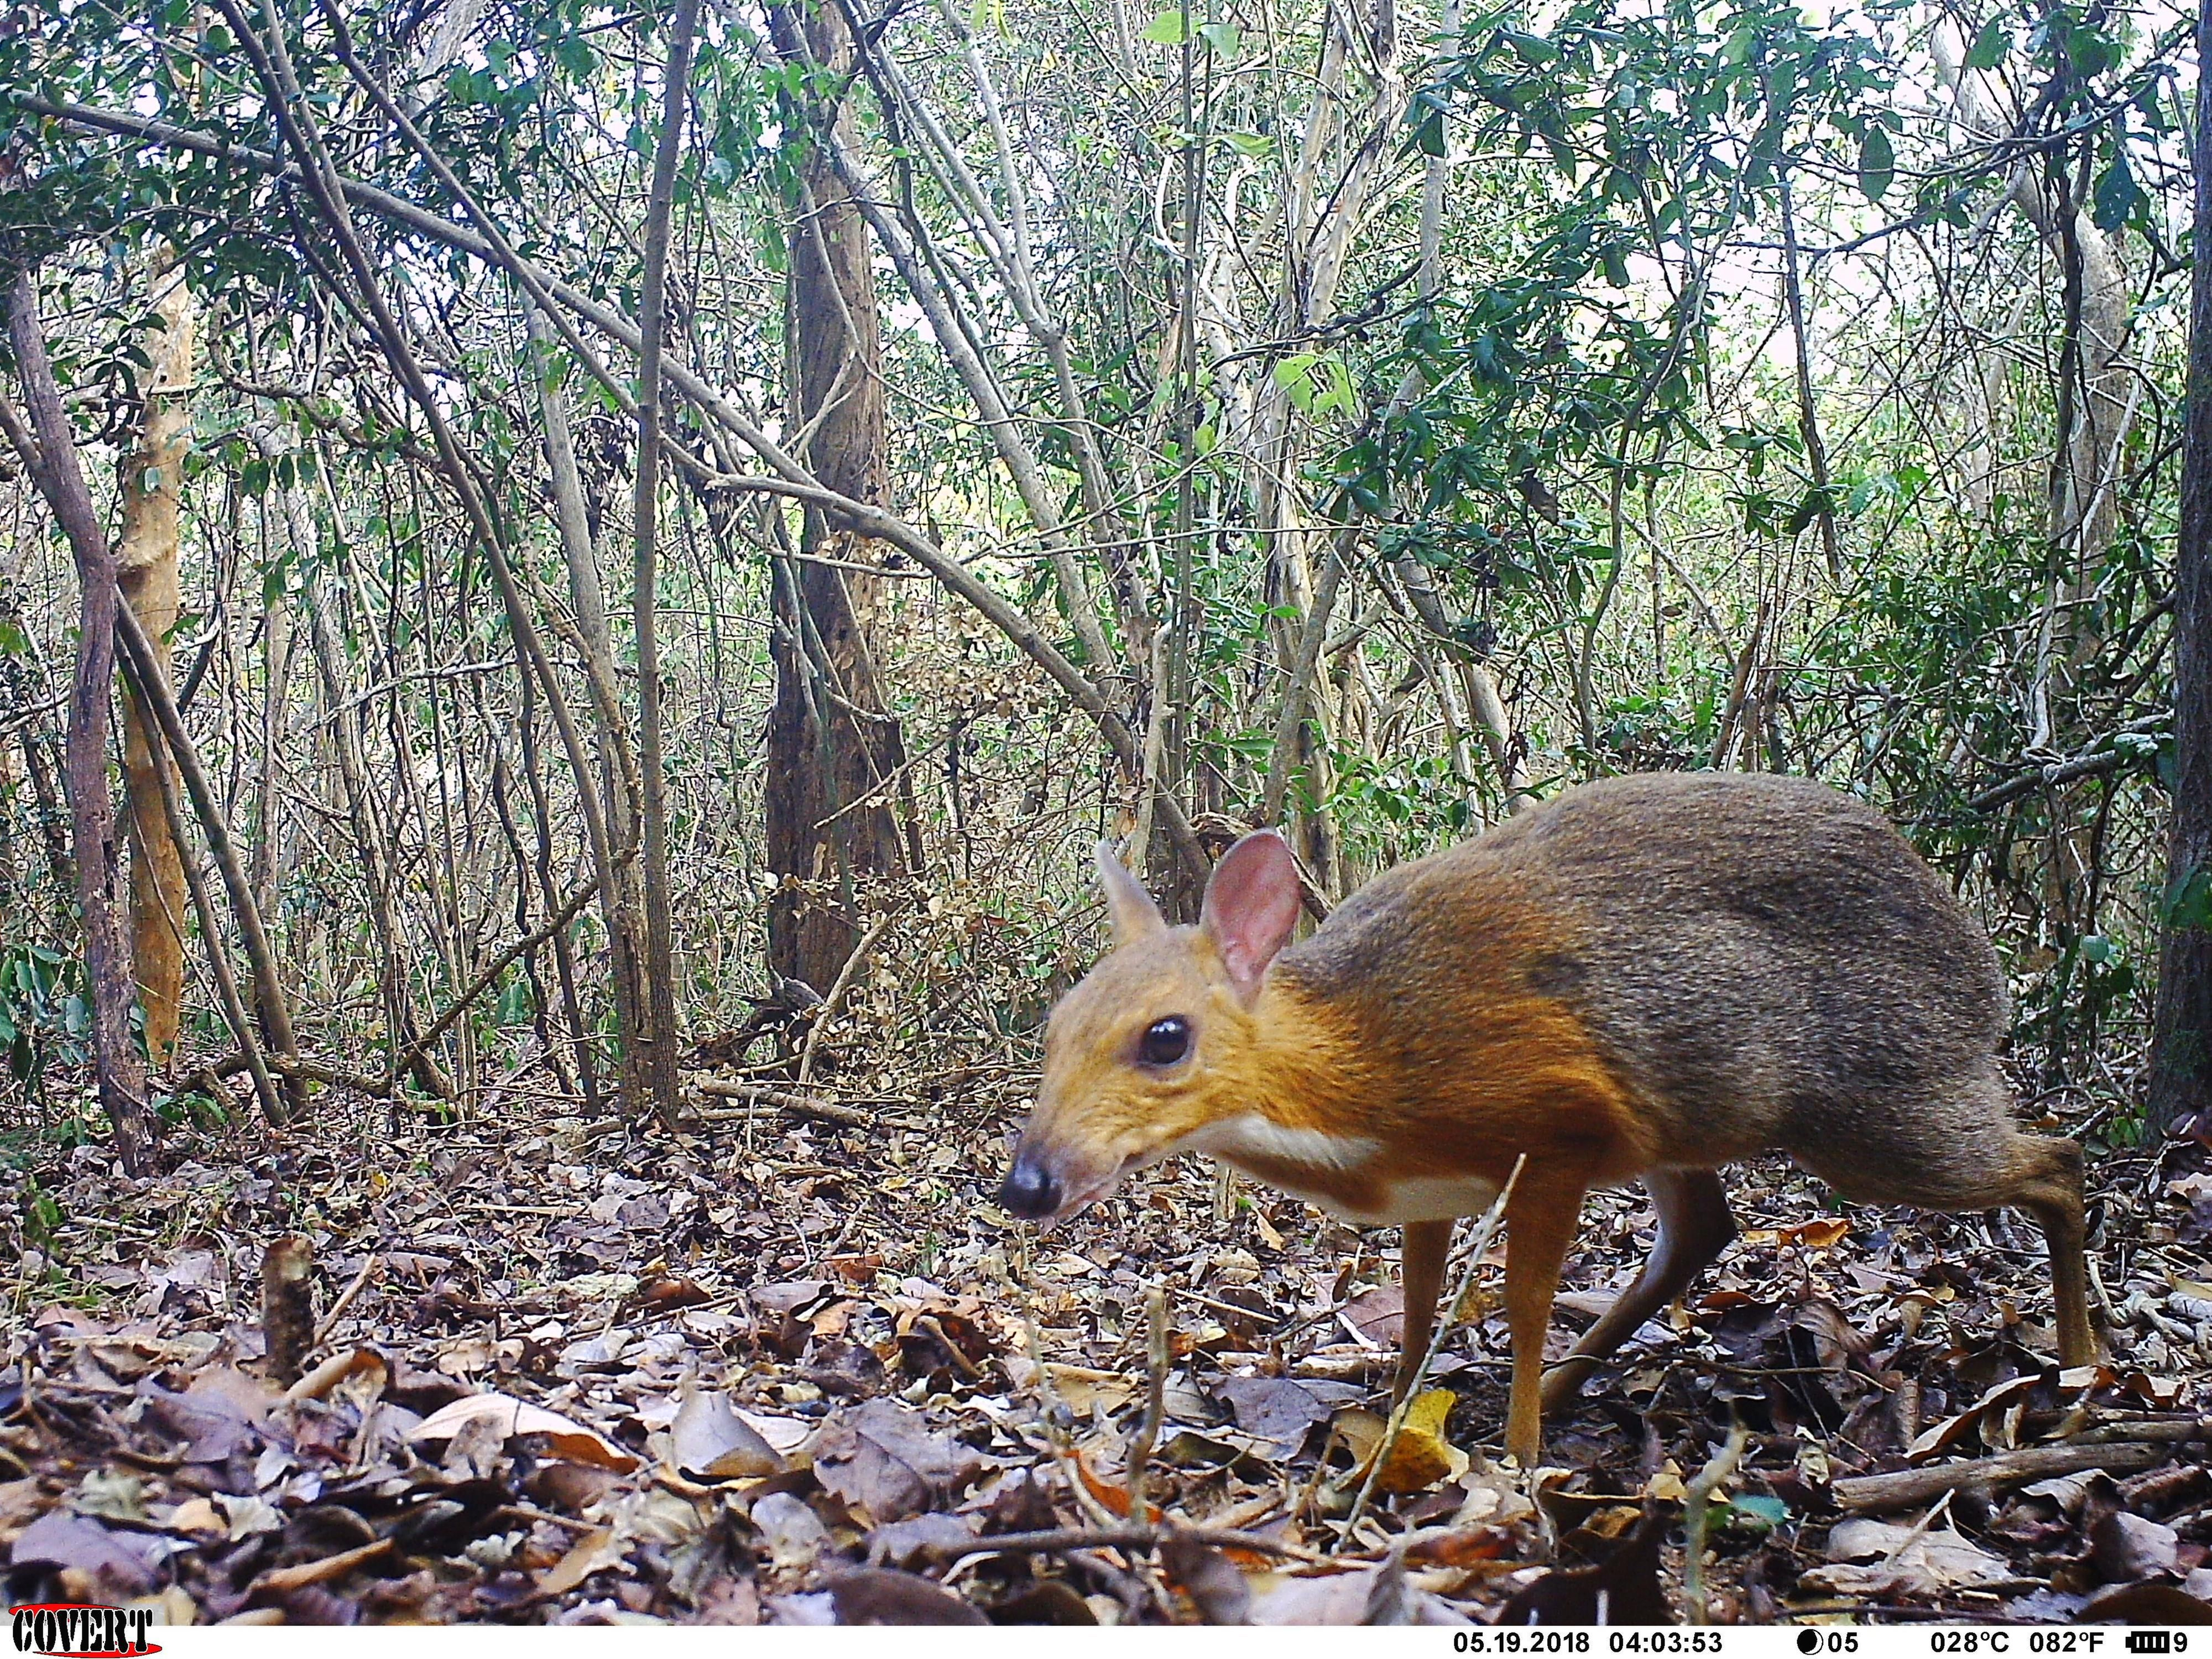 Missing for 30 Years, a Rare Deer Species Is Rediscovered in Vietnam